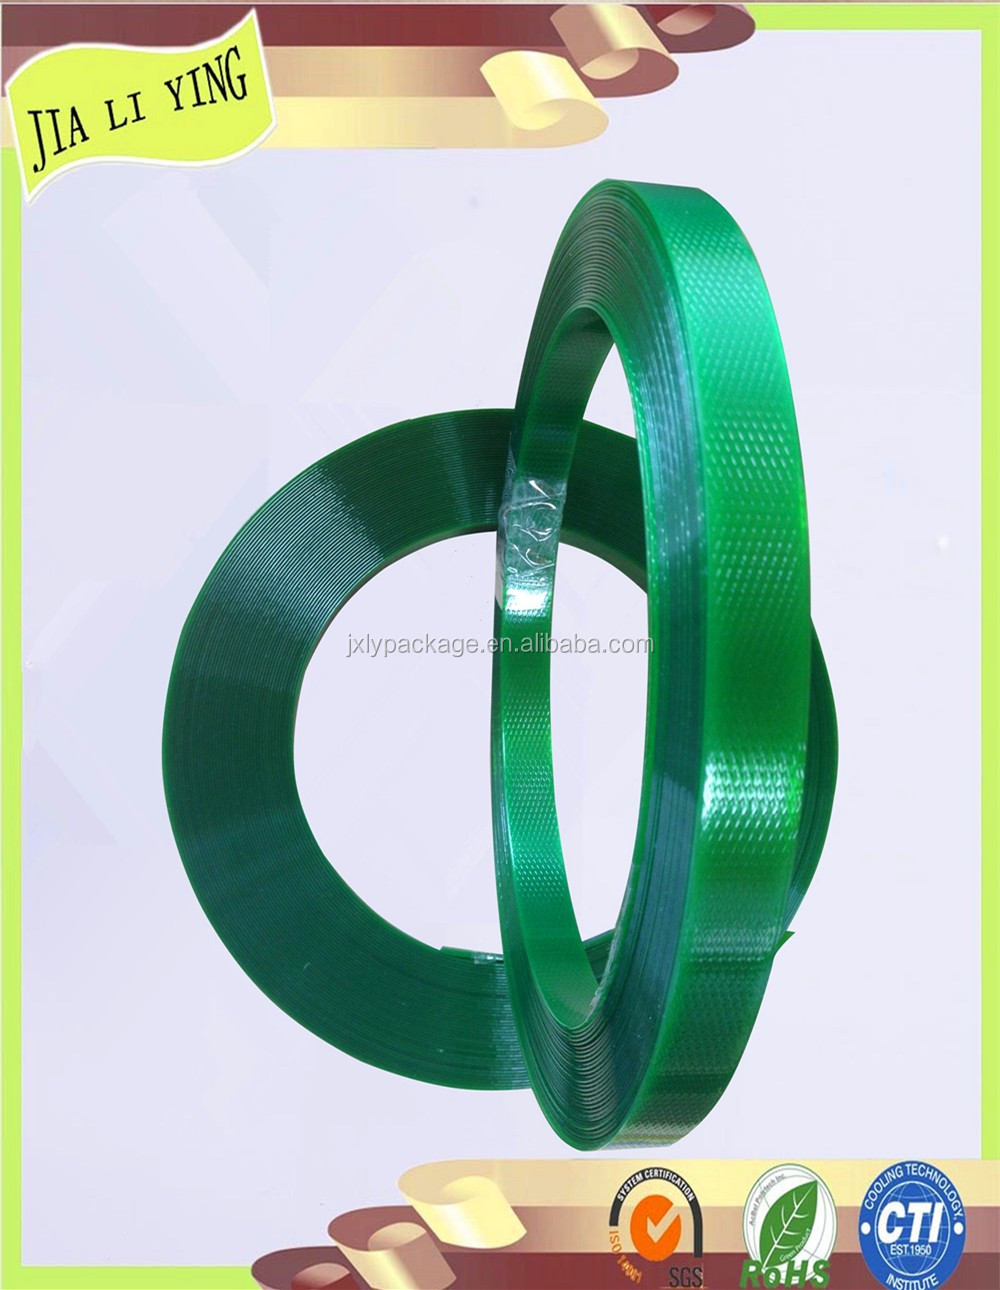 China Factory 18kg Green Pet Strapping Band Pet Strapping